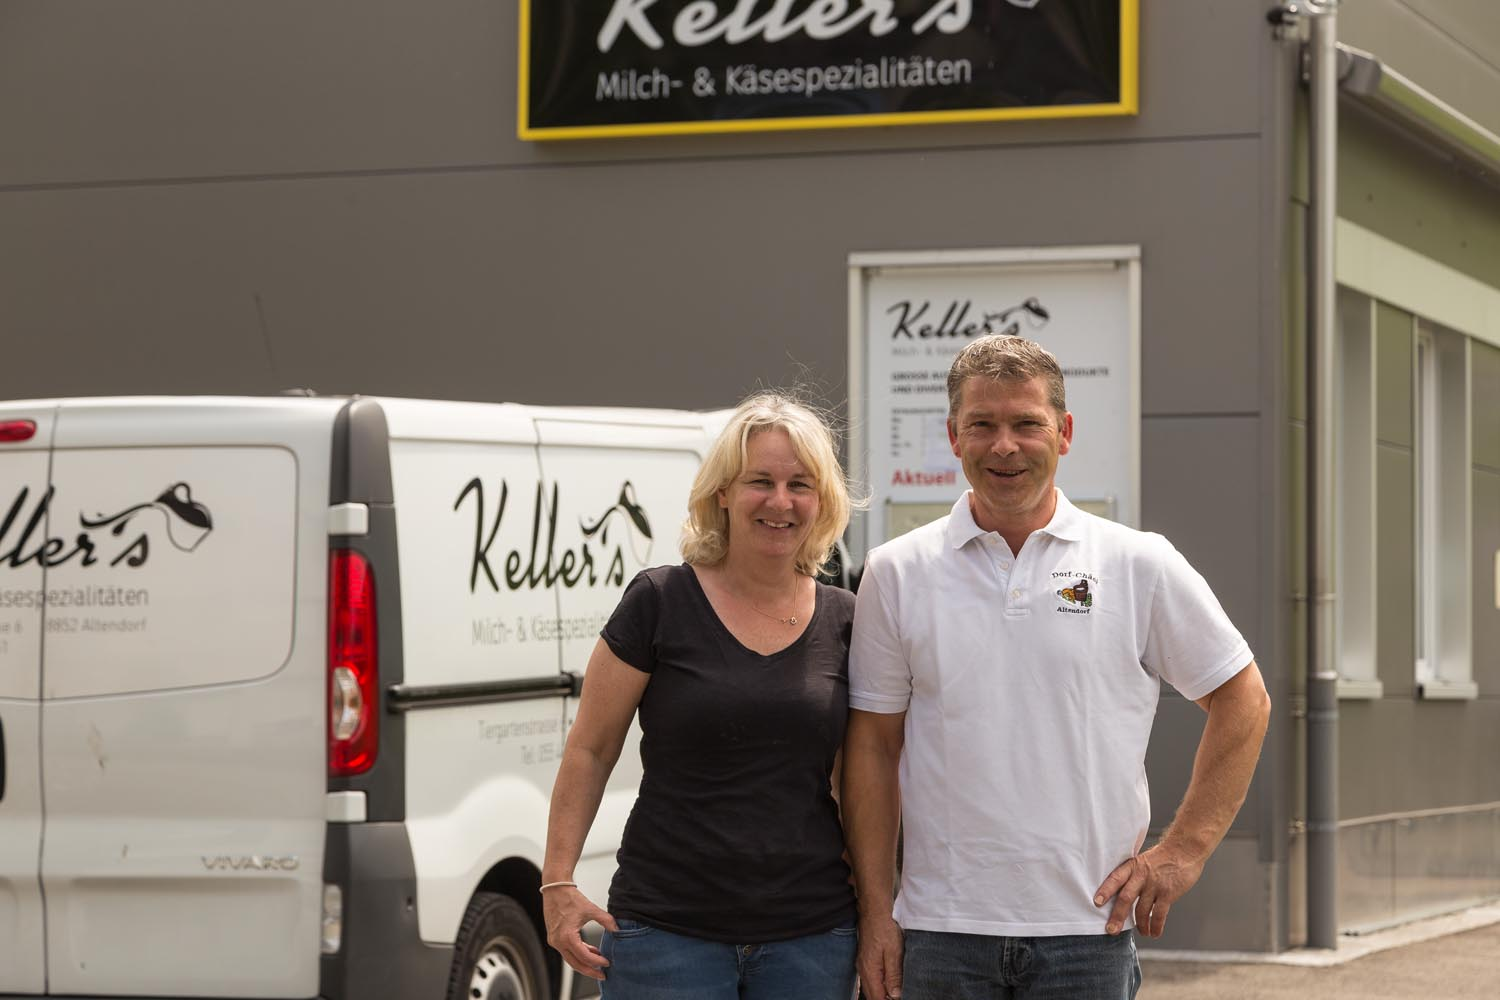 Familie Keller in Altendorf SZ